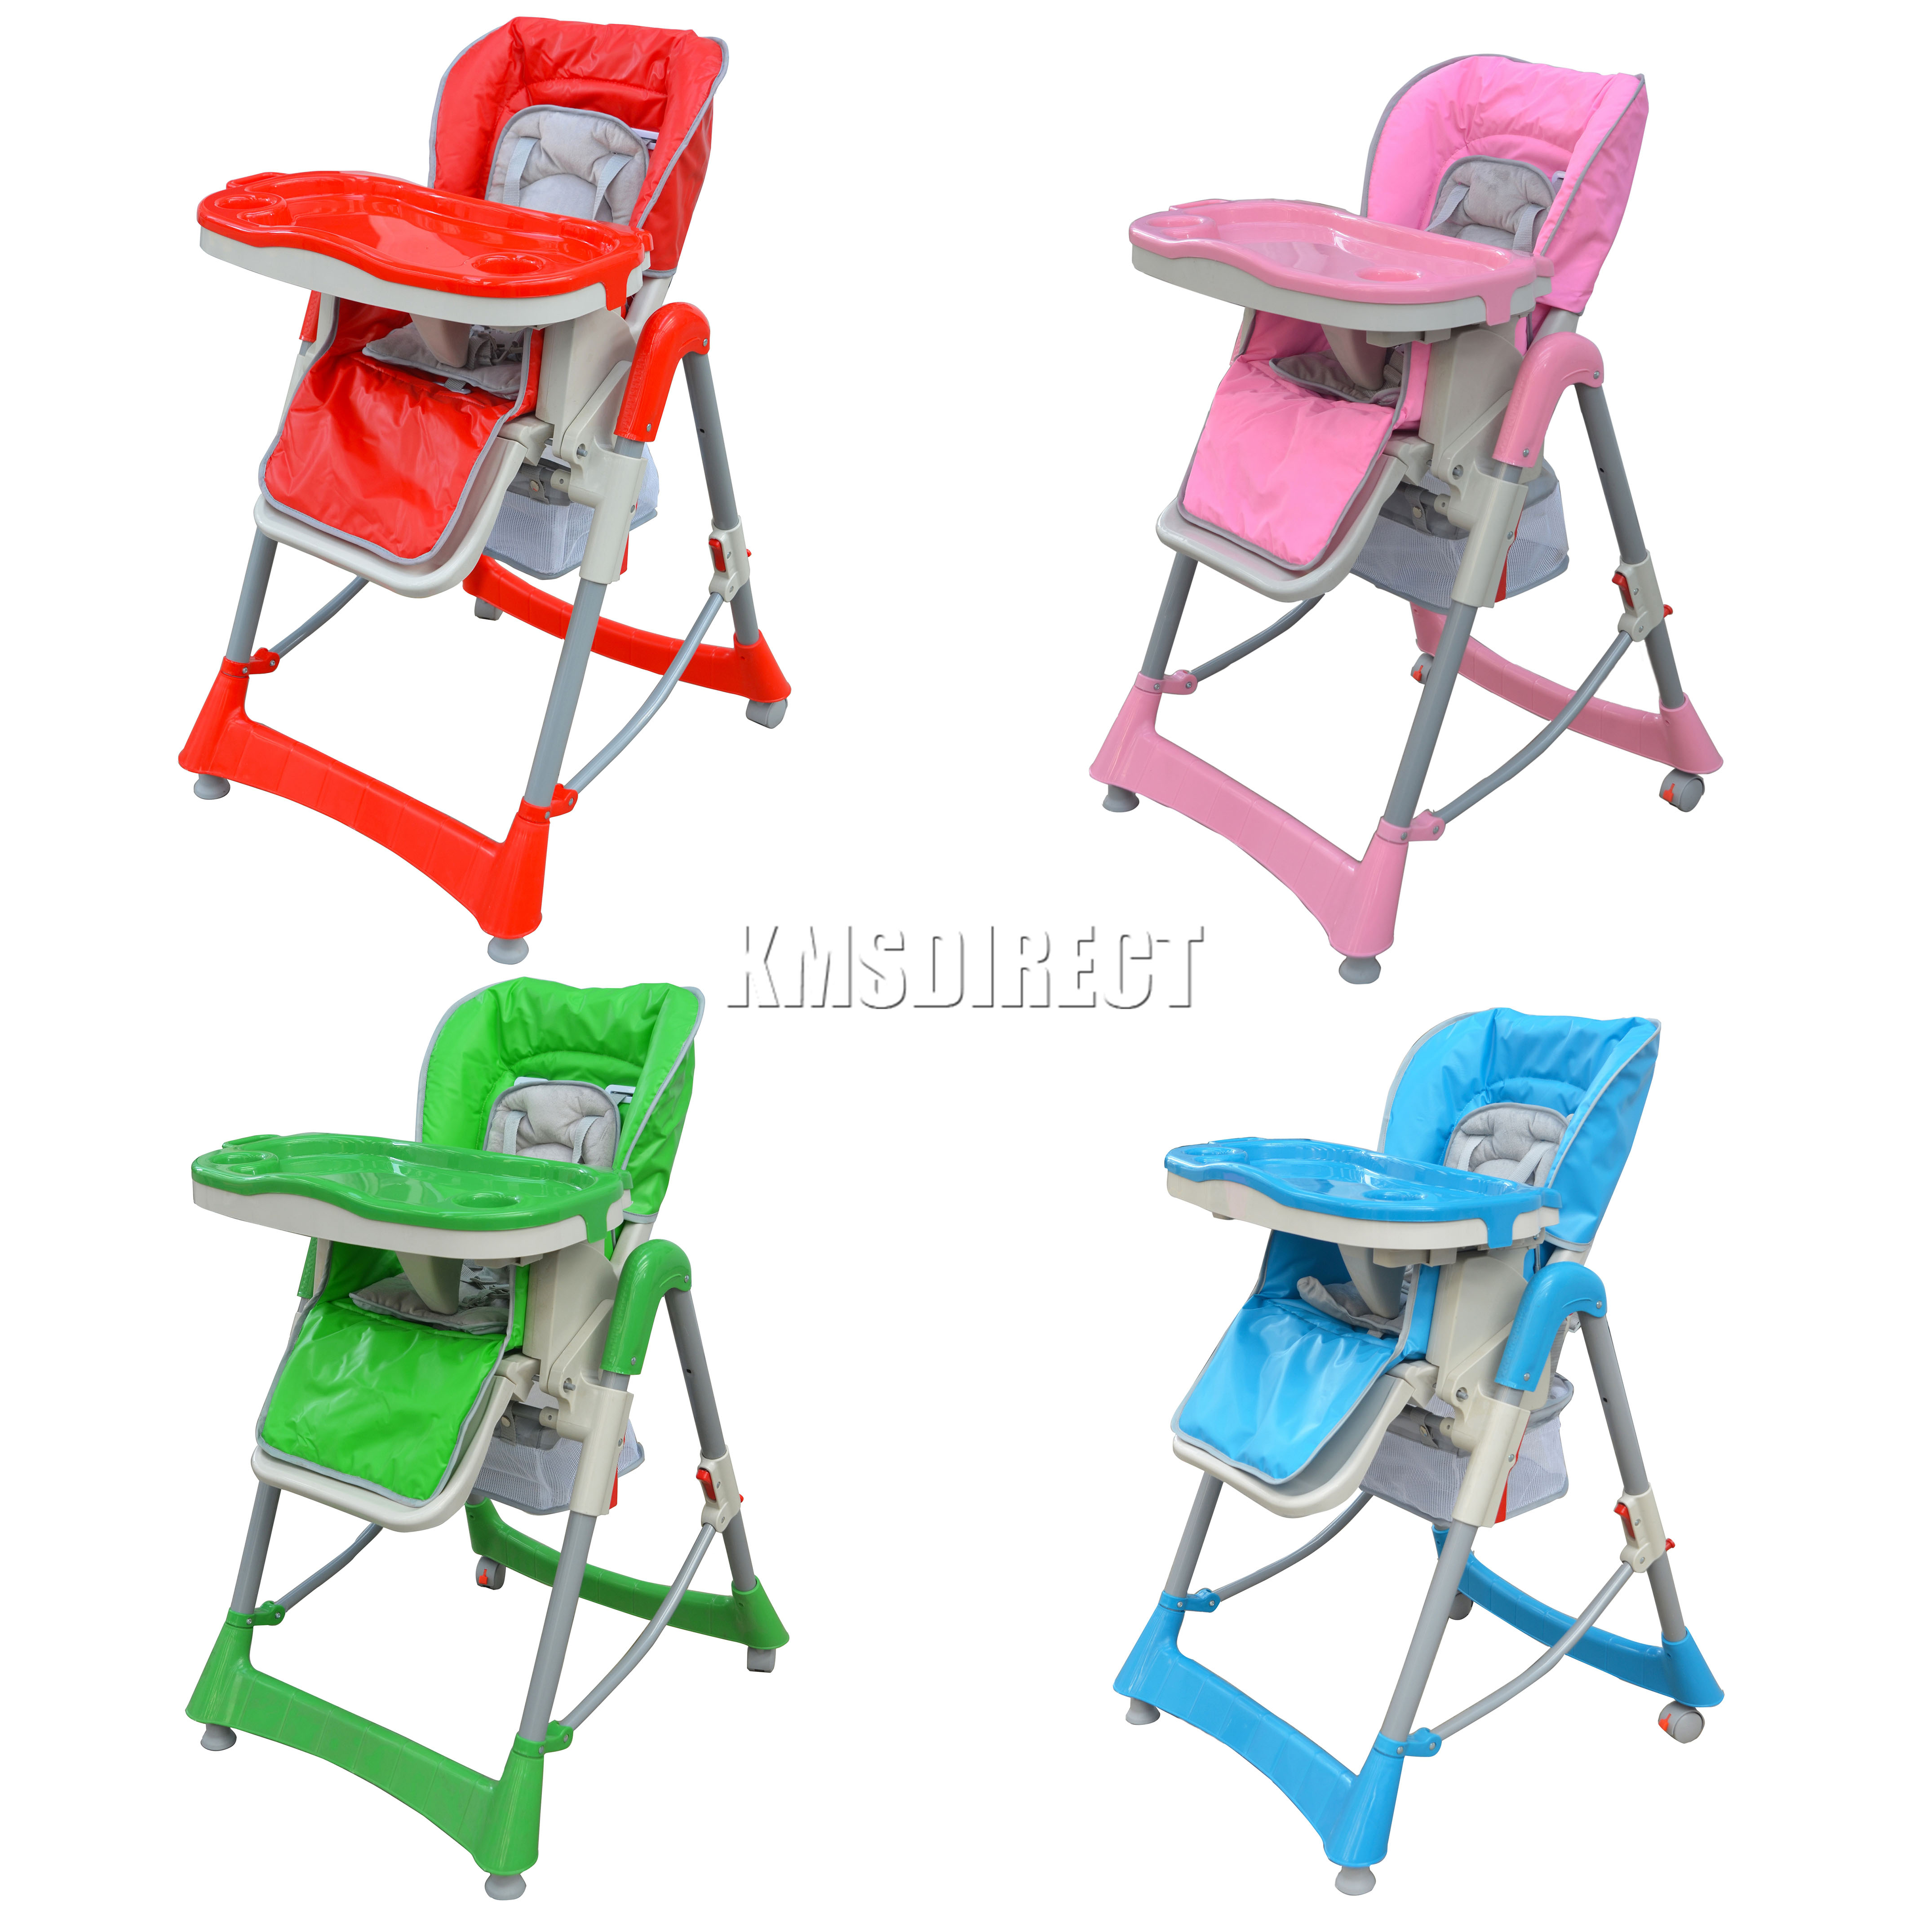 foldable high chairs chair cover hire mornington peninsula baby recline highchair height